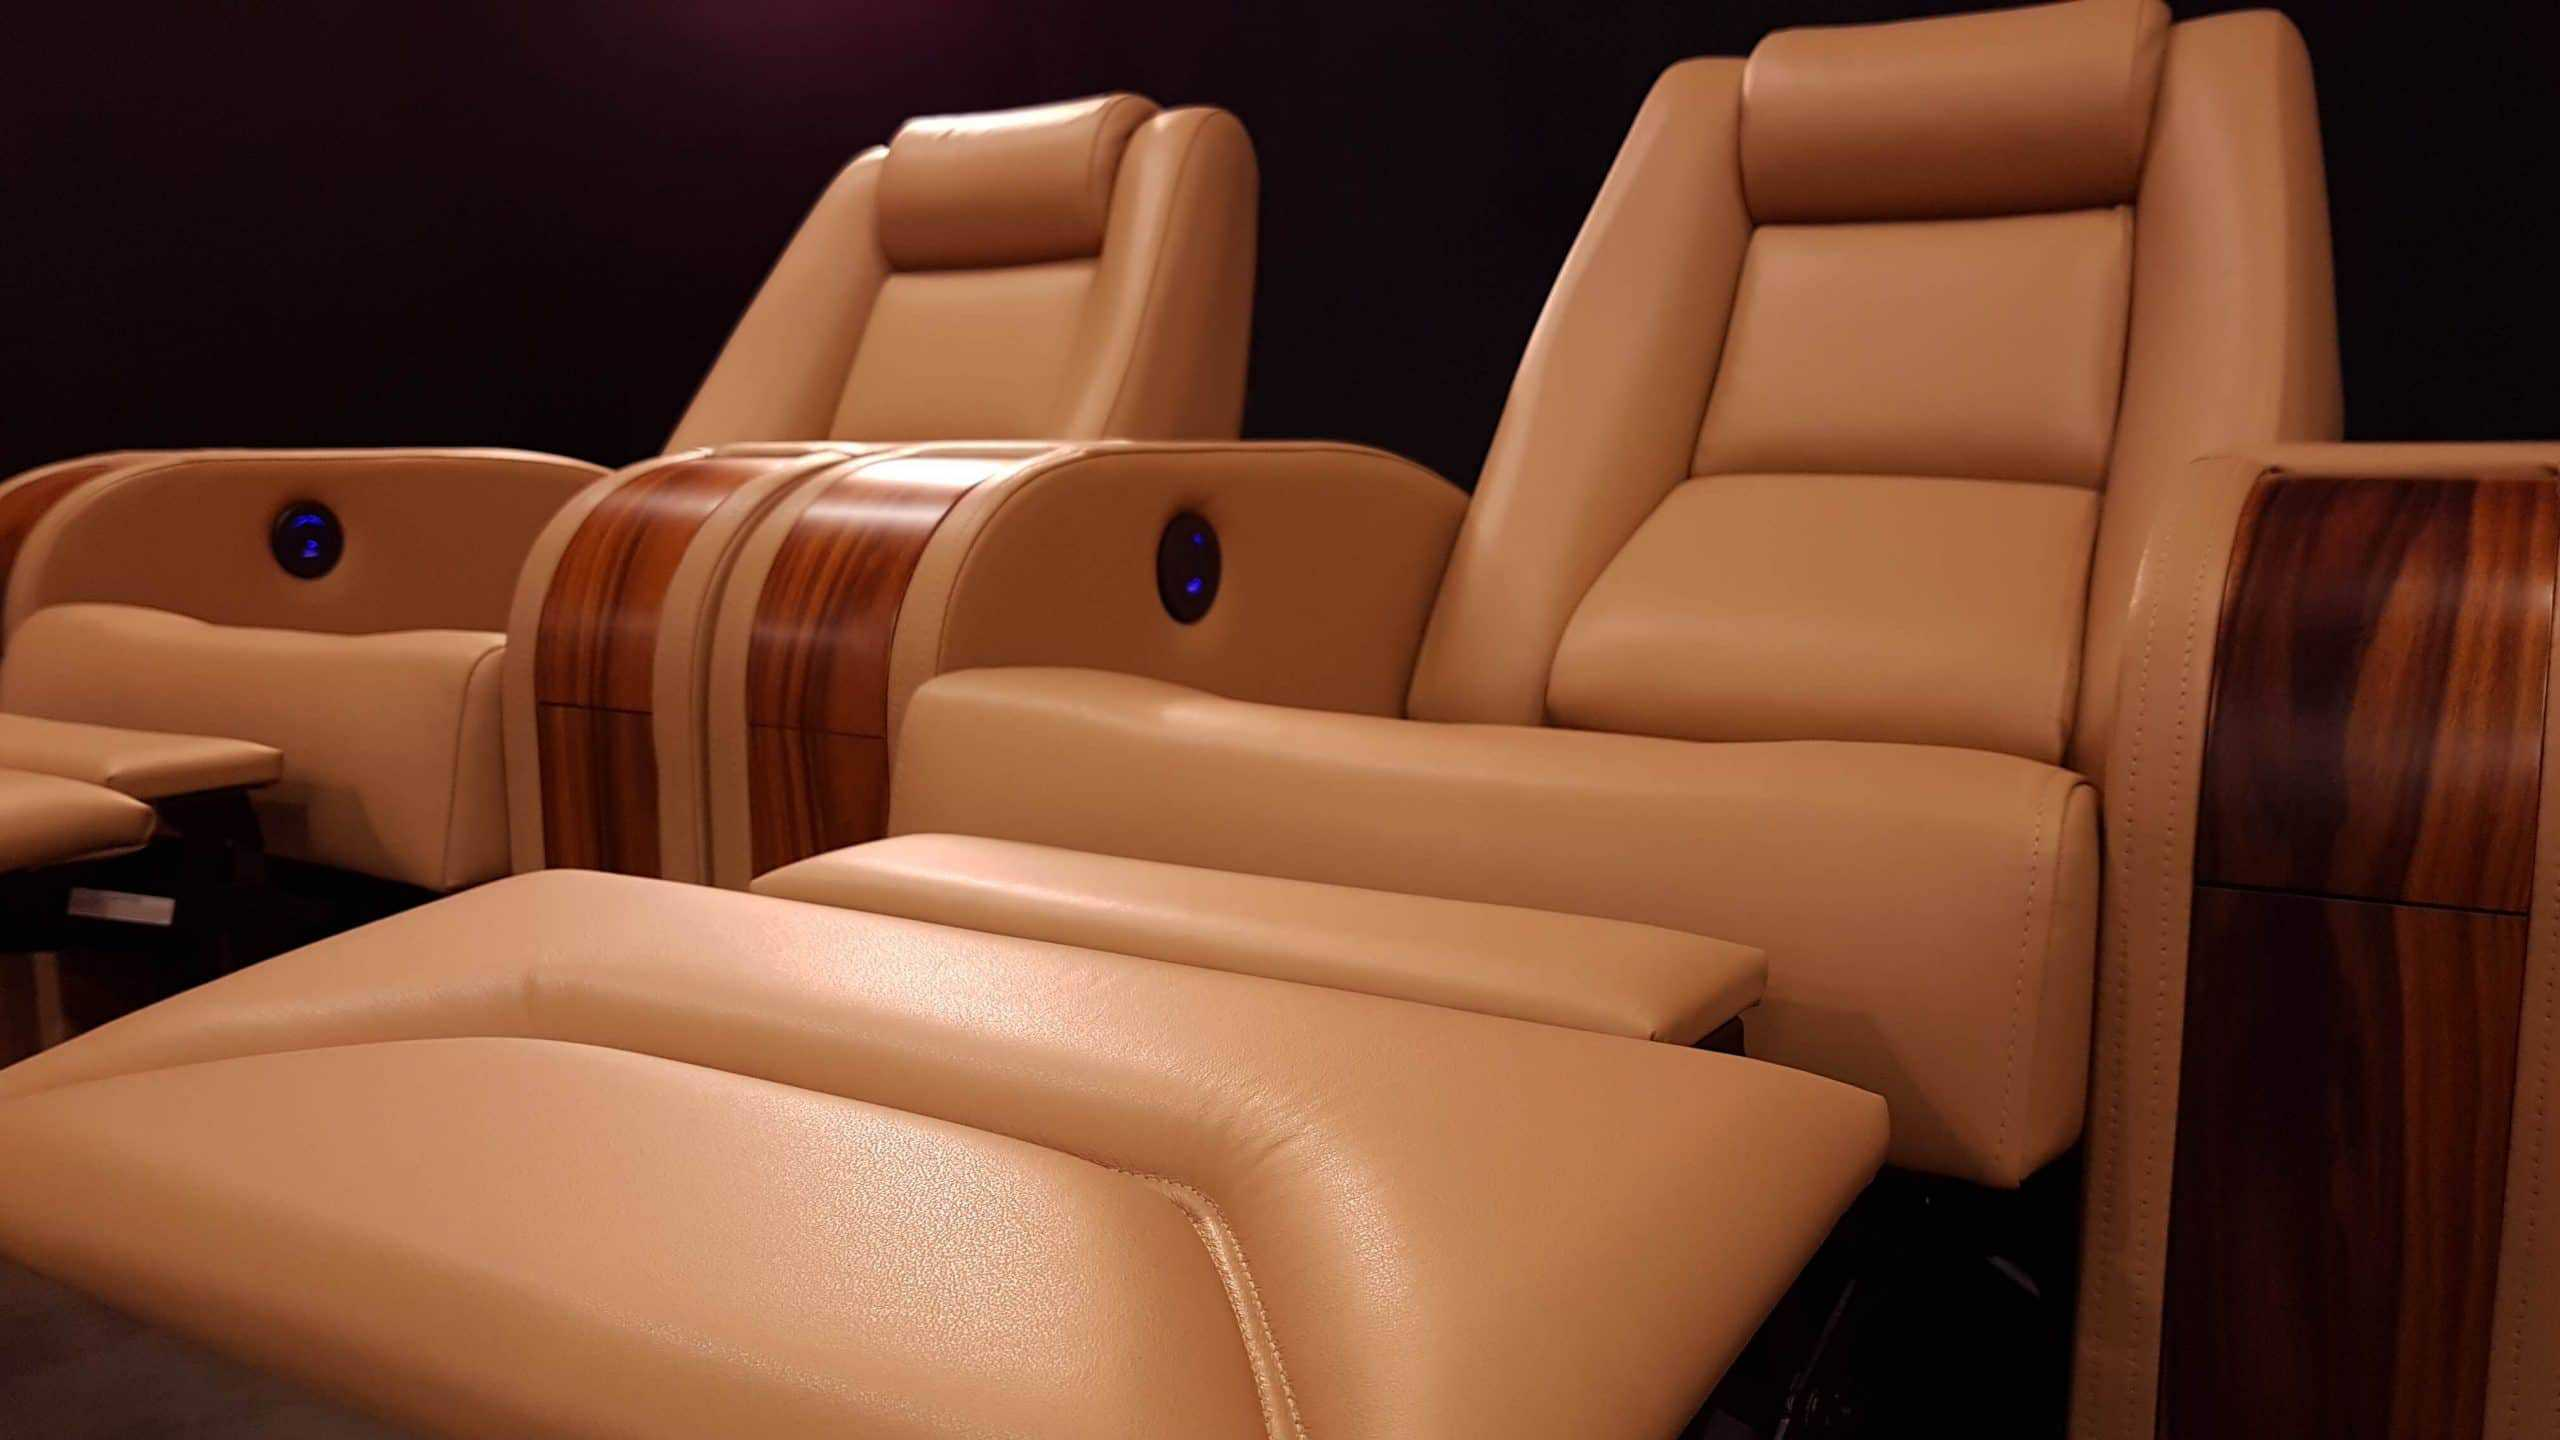 f1_cream_home_theater_chairs (1)